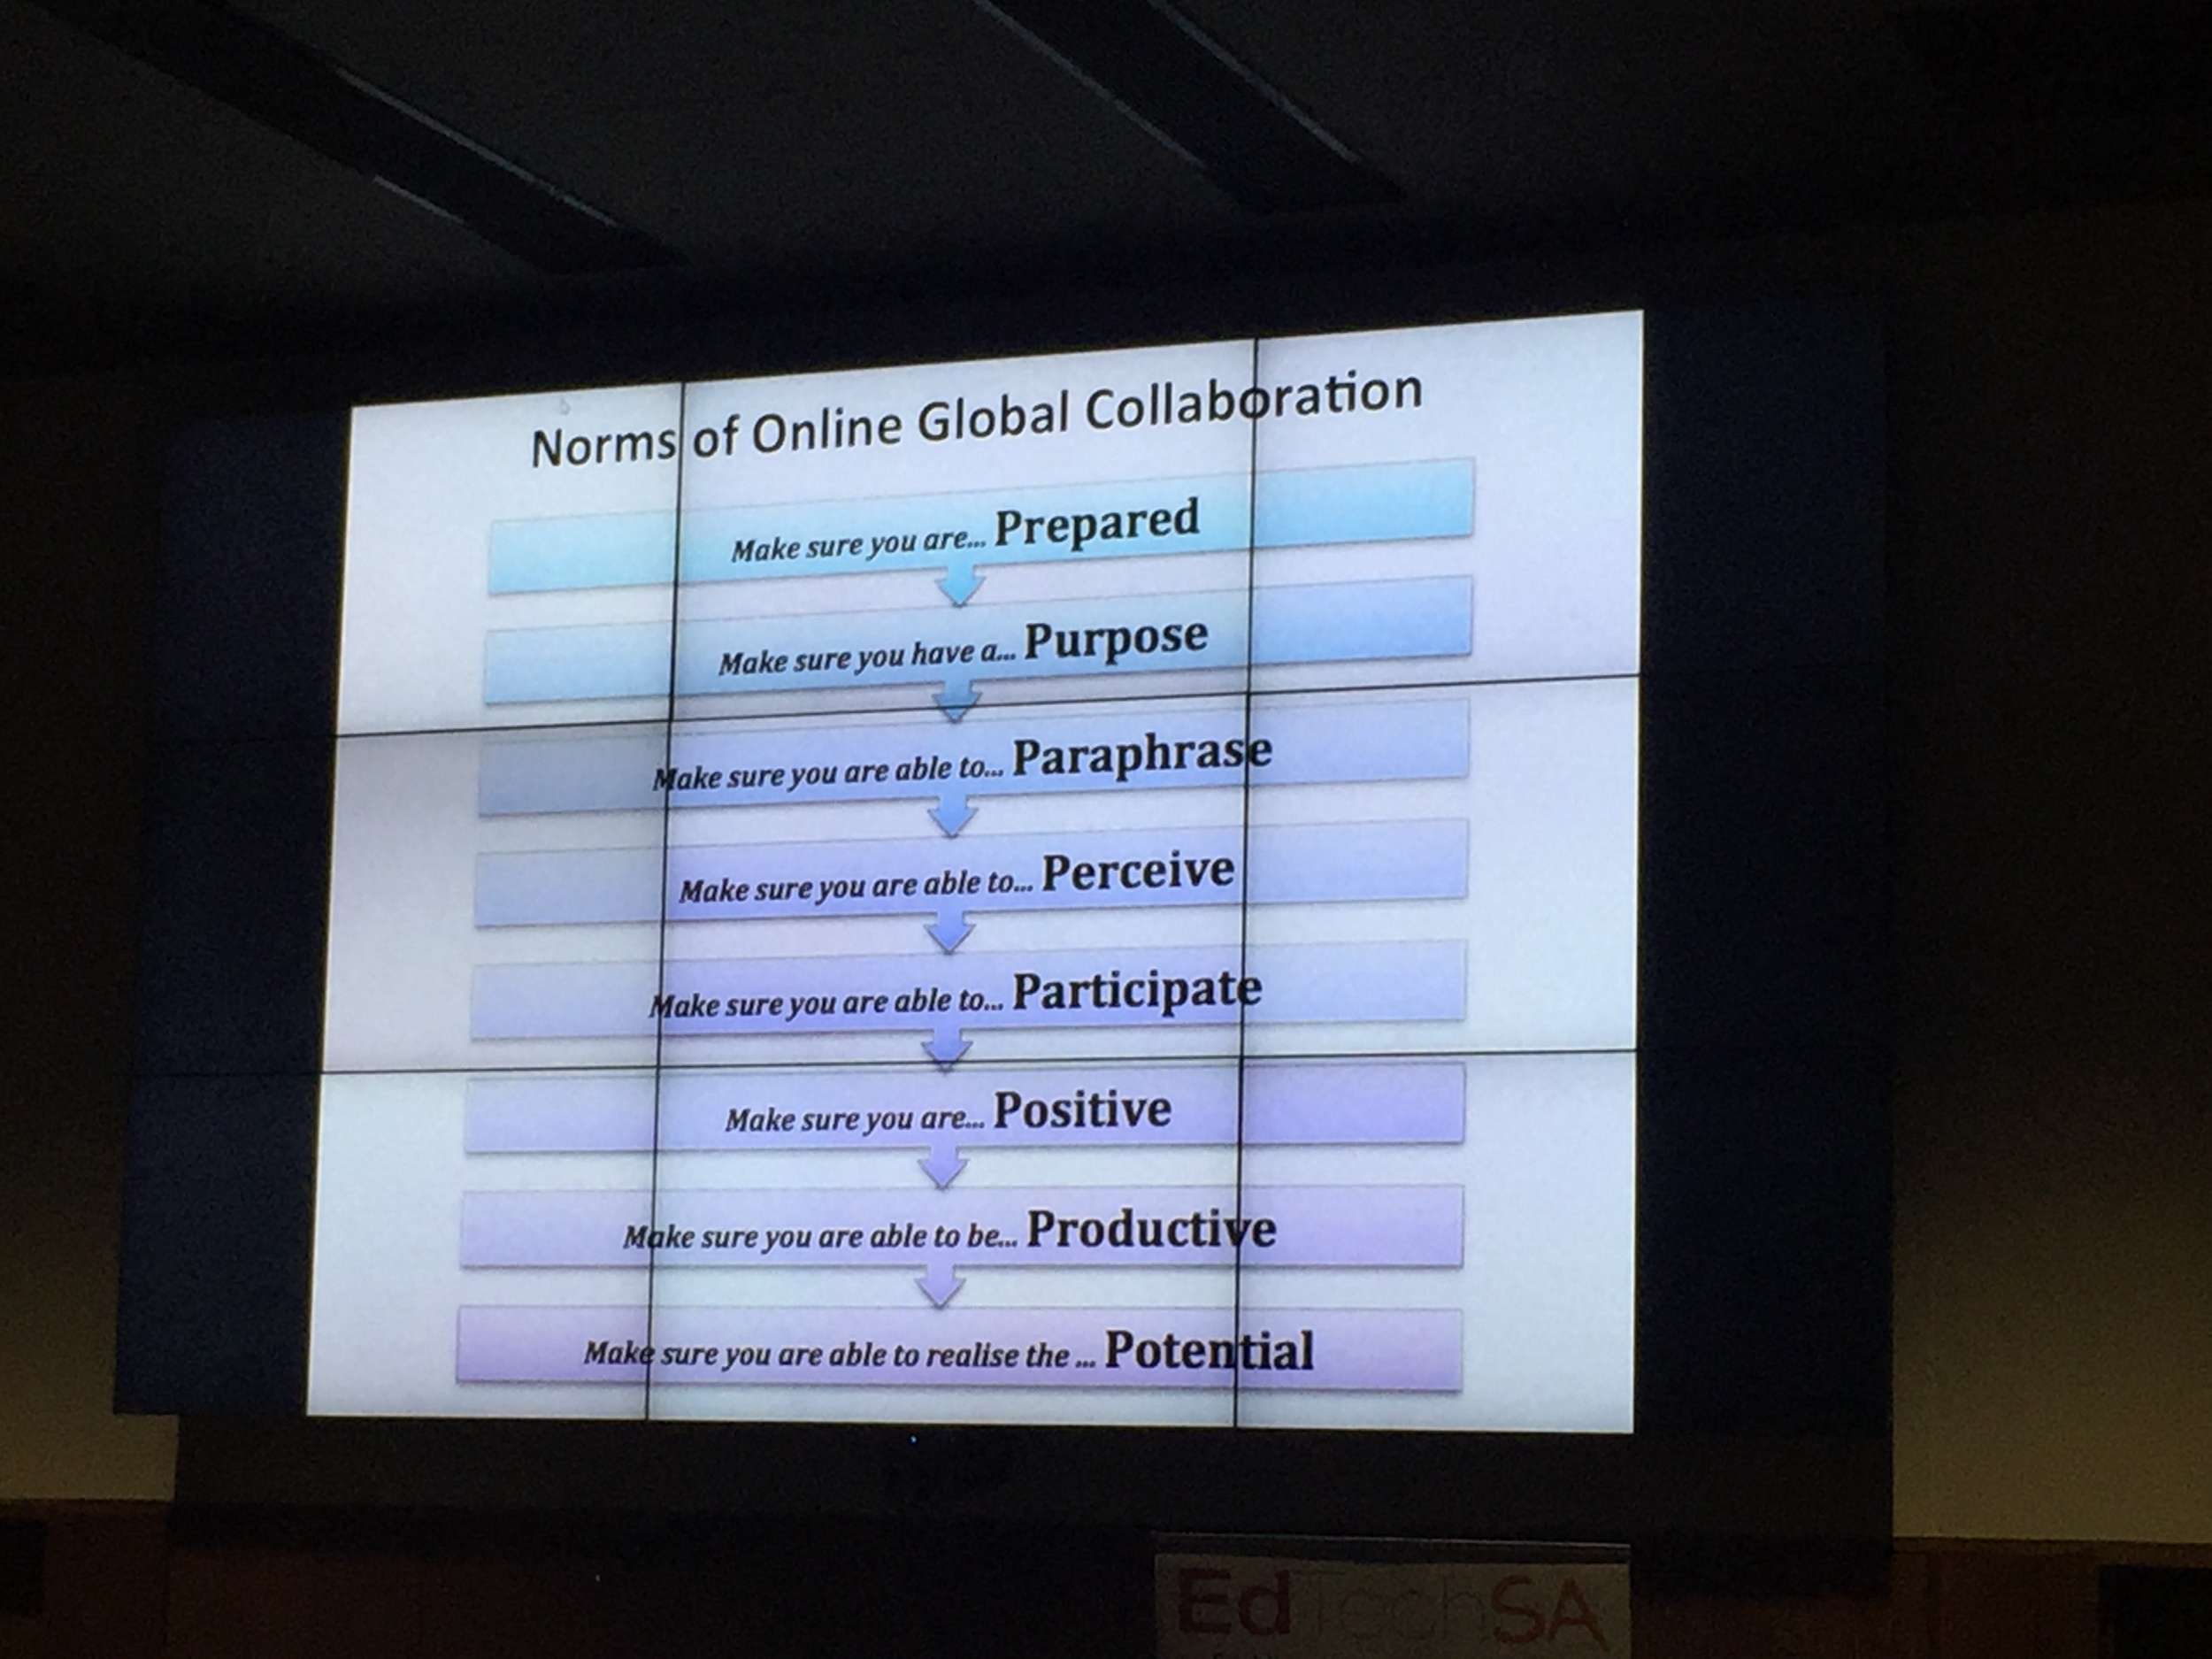 The Norms of Online Global Collaboration